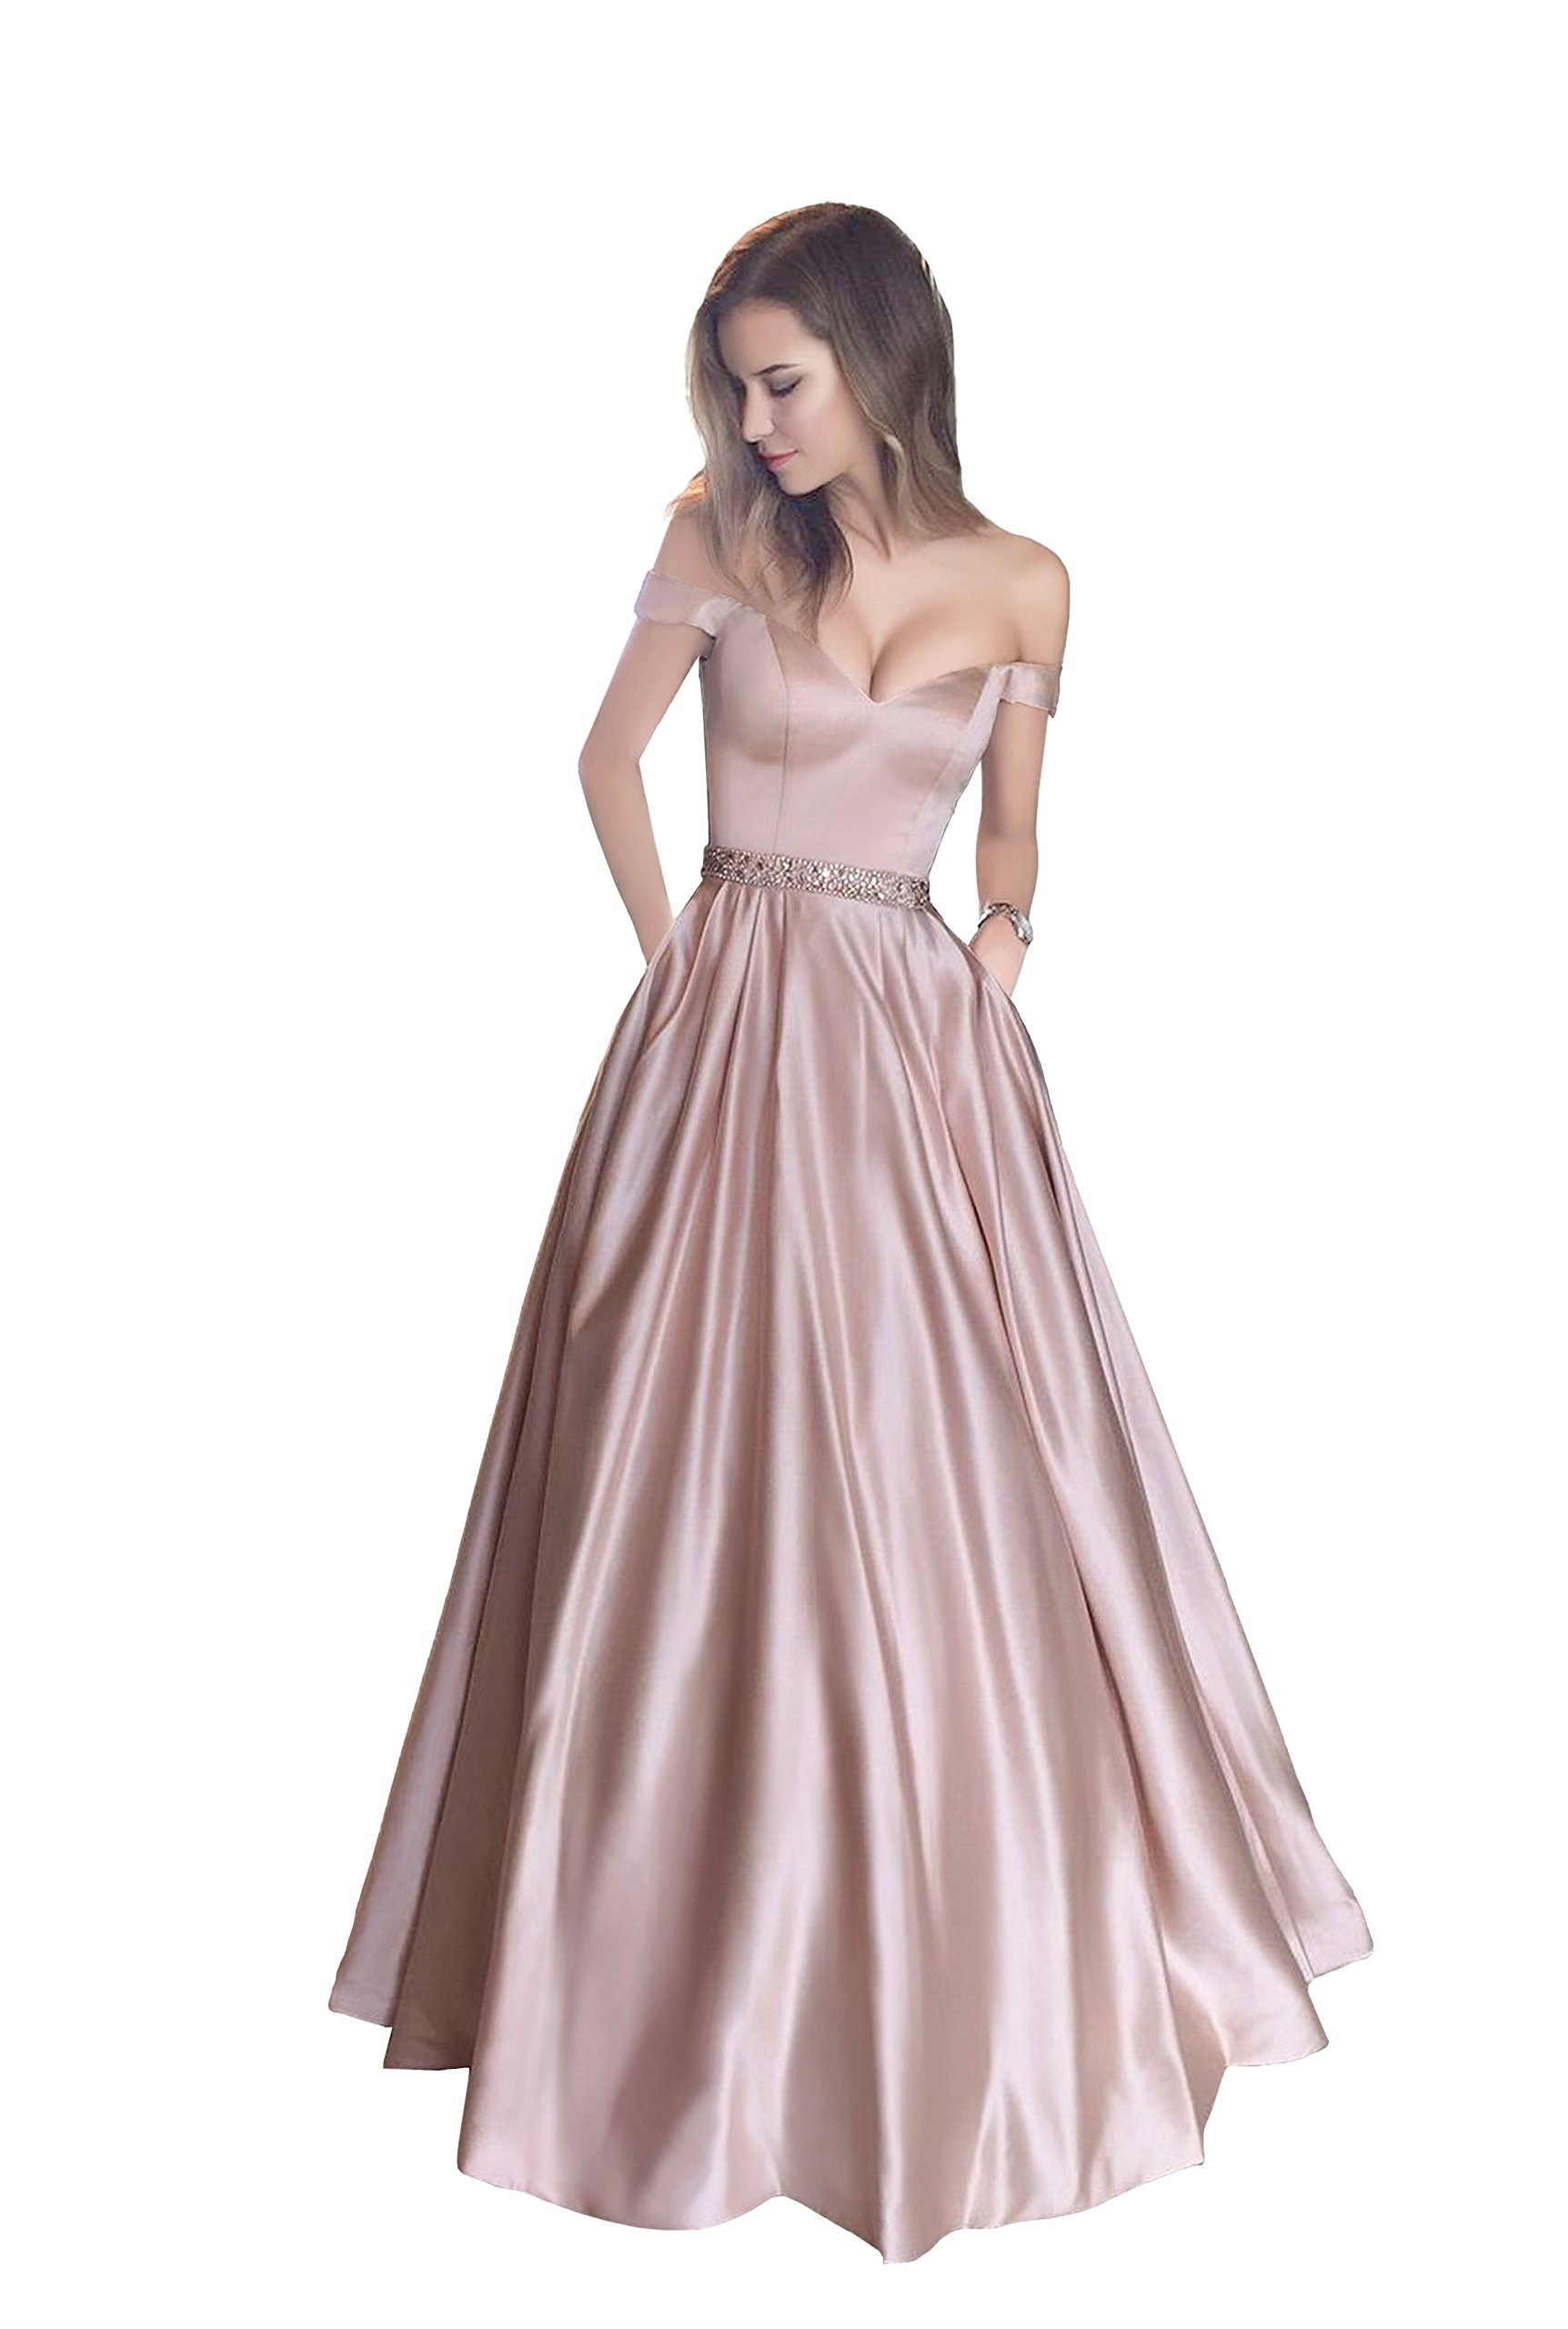 Harsuccting Off The Shoulder Beaded Satin Evening Prom Dress With Pocket Blush Pink 4